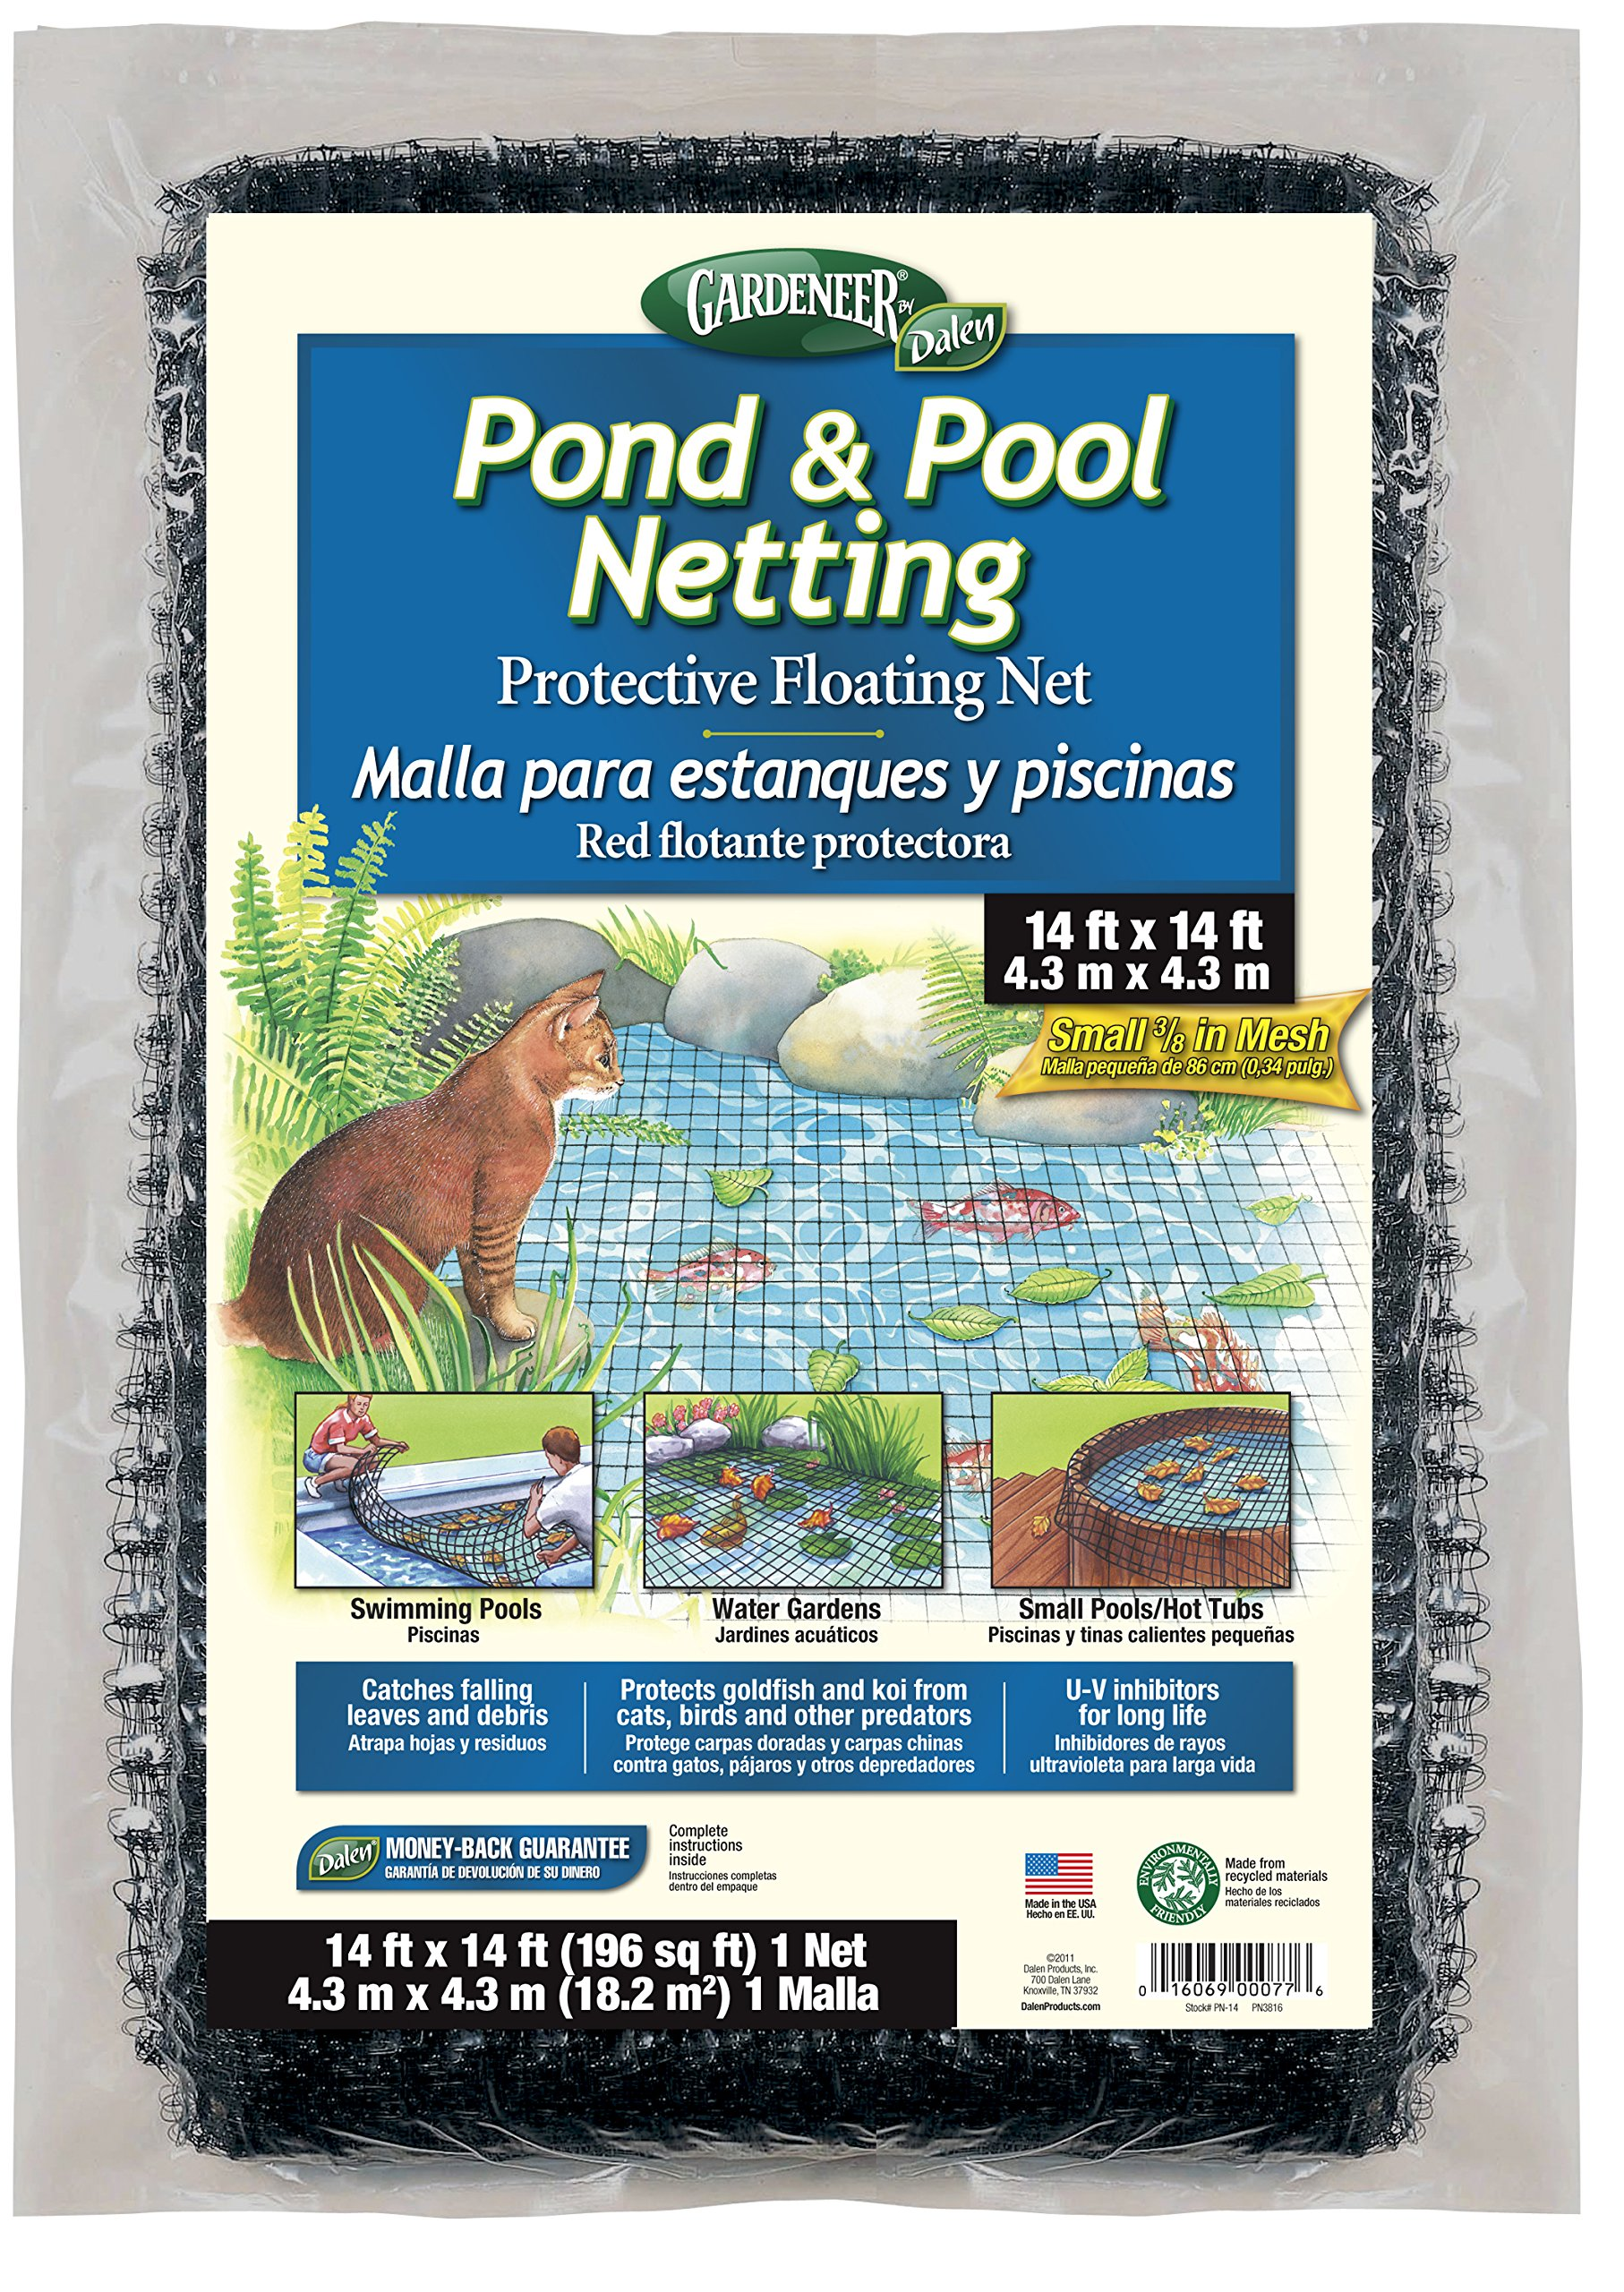 Dalen PN-14 Gardeneer By Pond & Pool Netting Protective Floating Net, 14' x 14' by Dalen